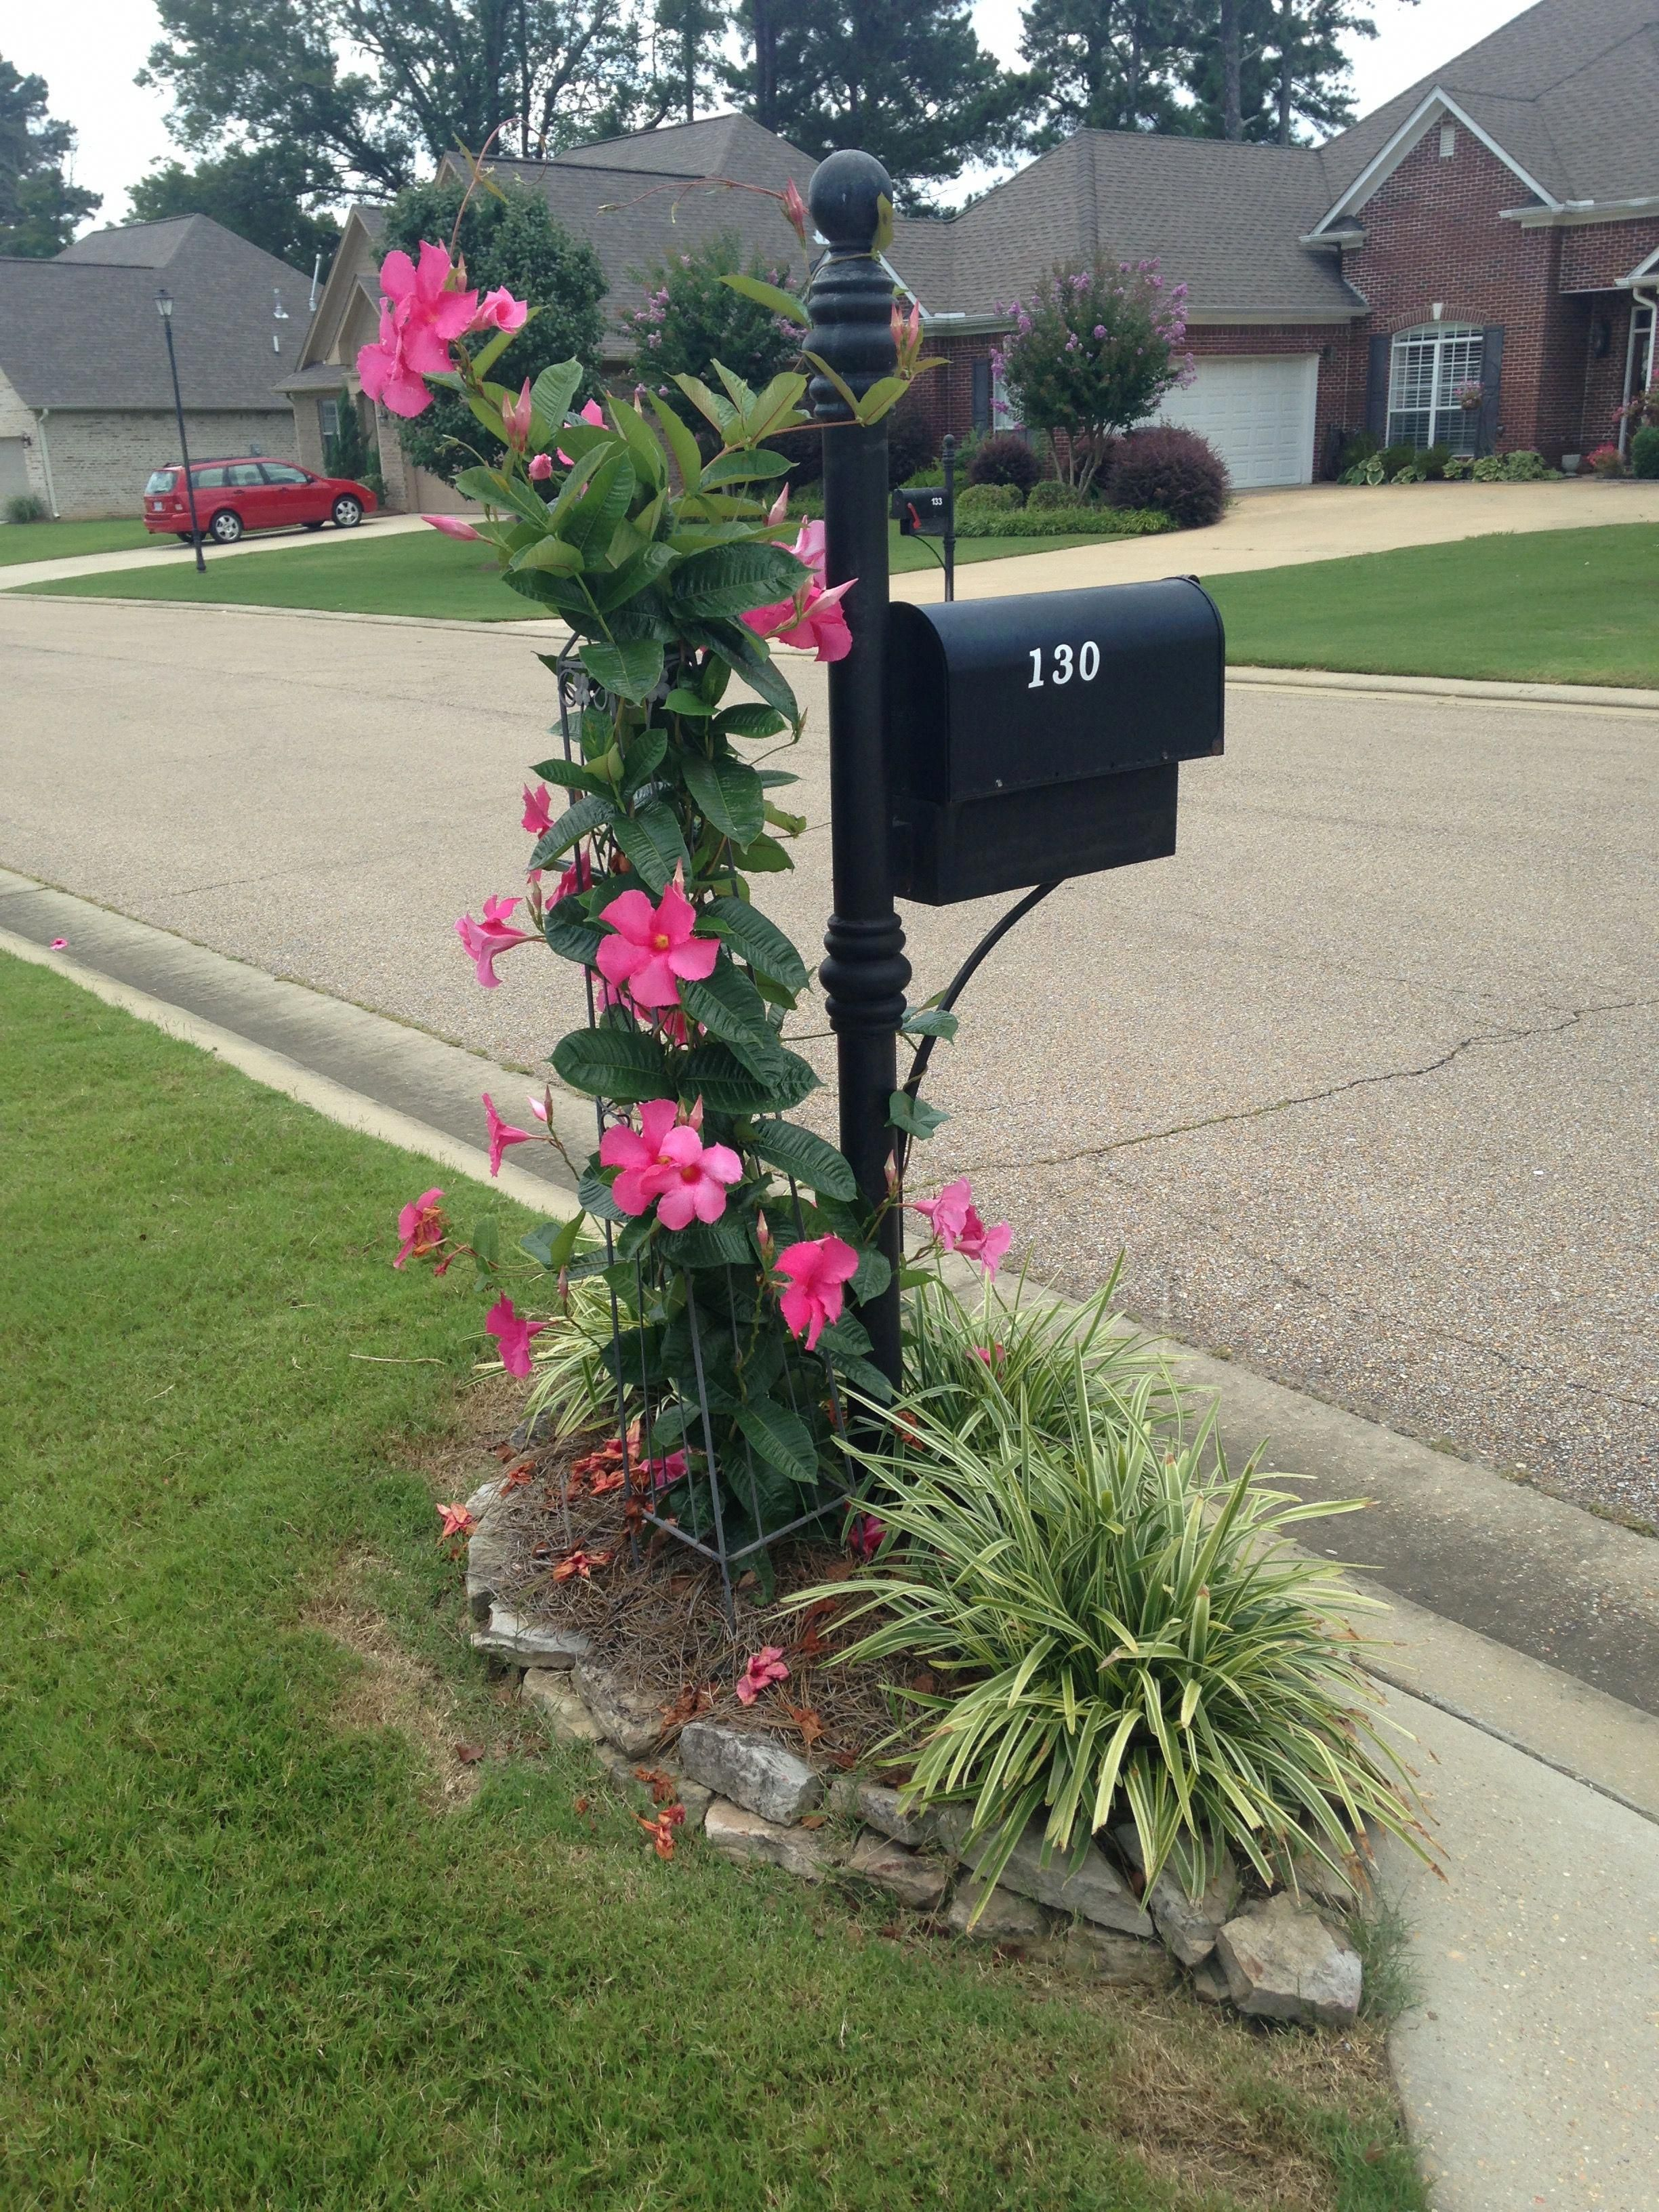 Pin By Callie Skipper On Gardening For This Dummy Things I Wish I Knew How To Do Mailbox Landscaping Mailbox Garden Landscape Design